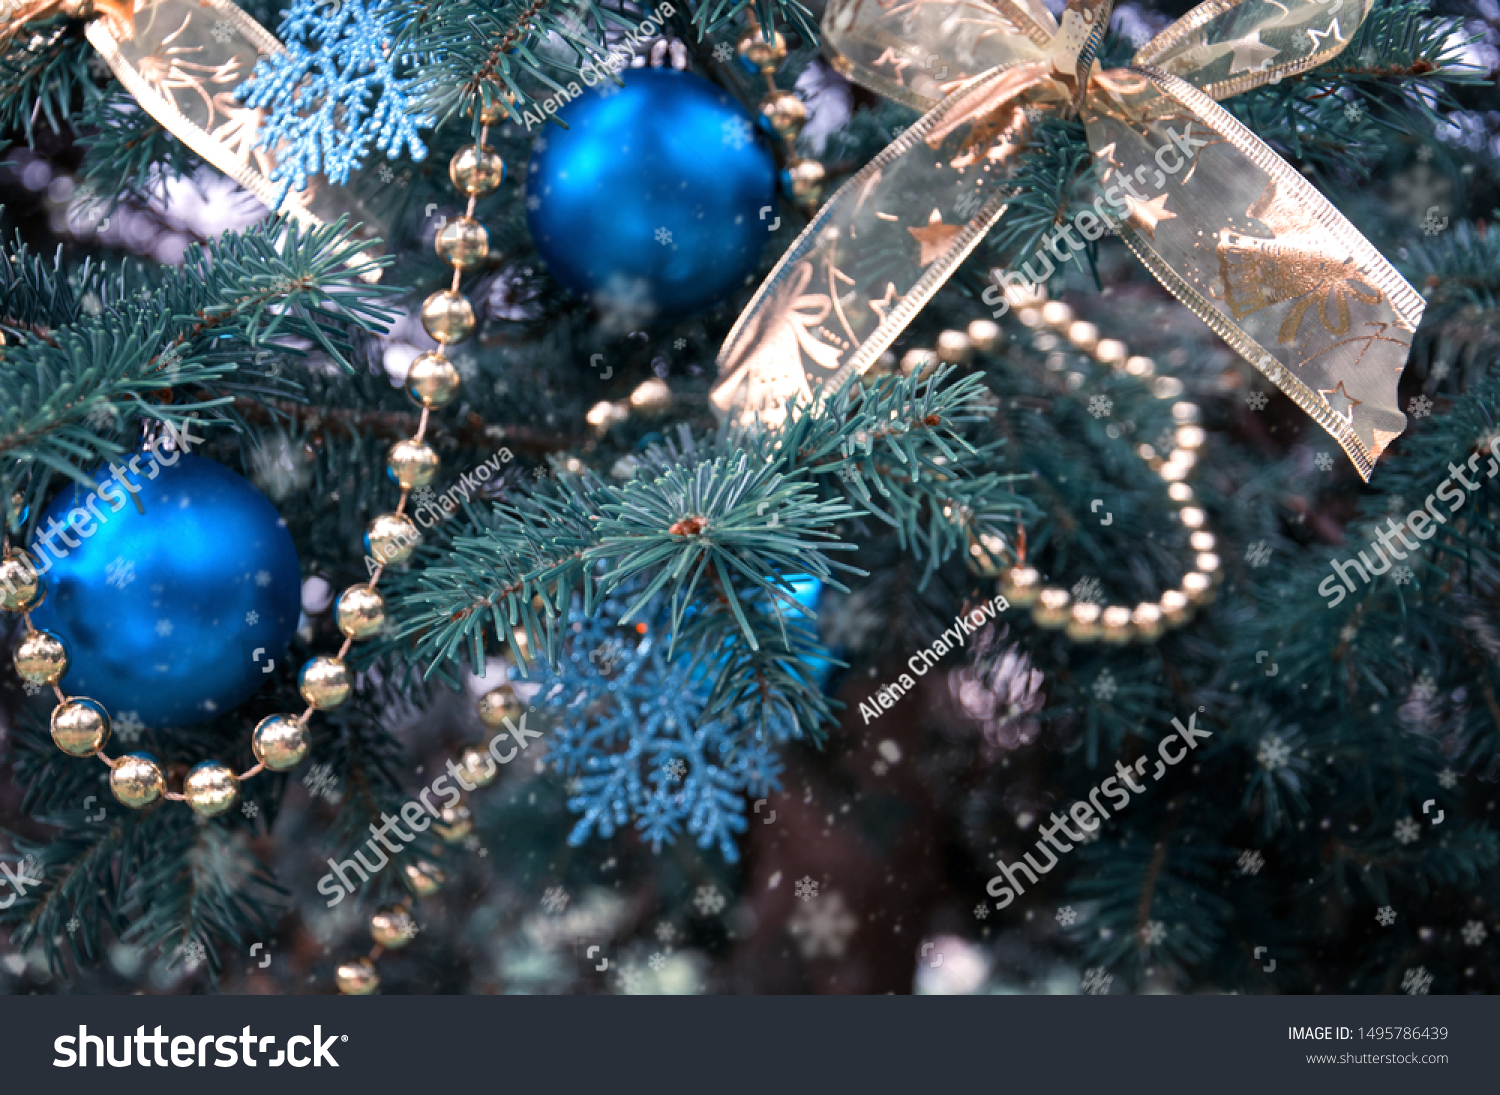 Closeup Christmas Tree Rose Gold Turquoise Stock Photo Edit Now 1495786439